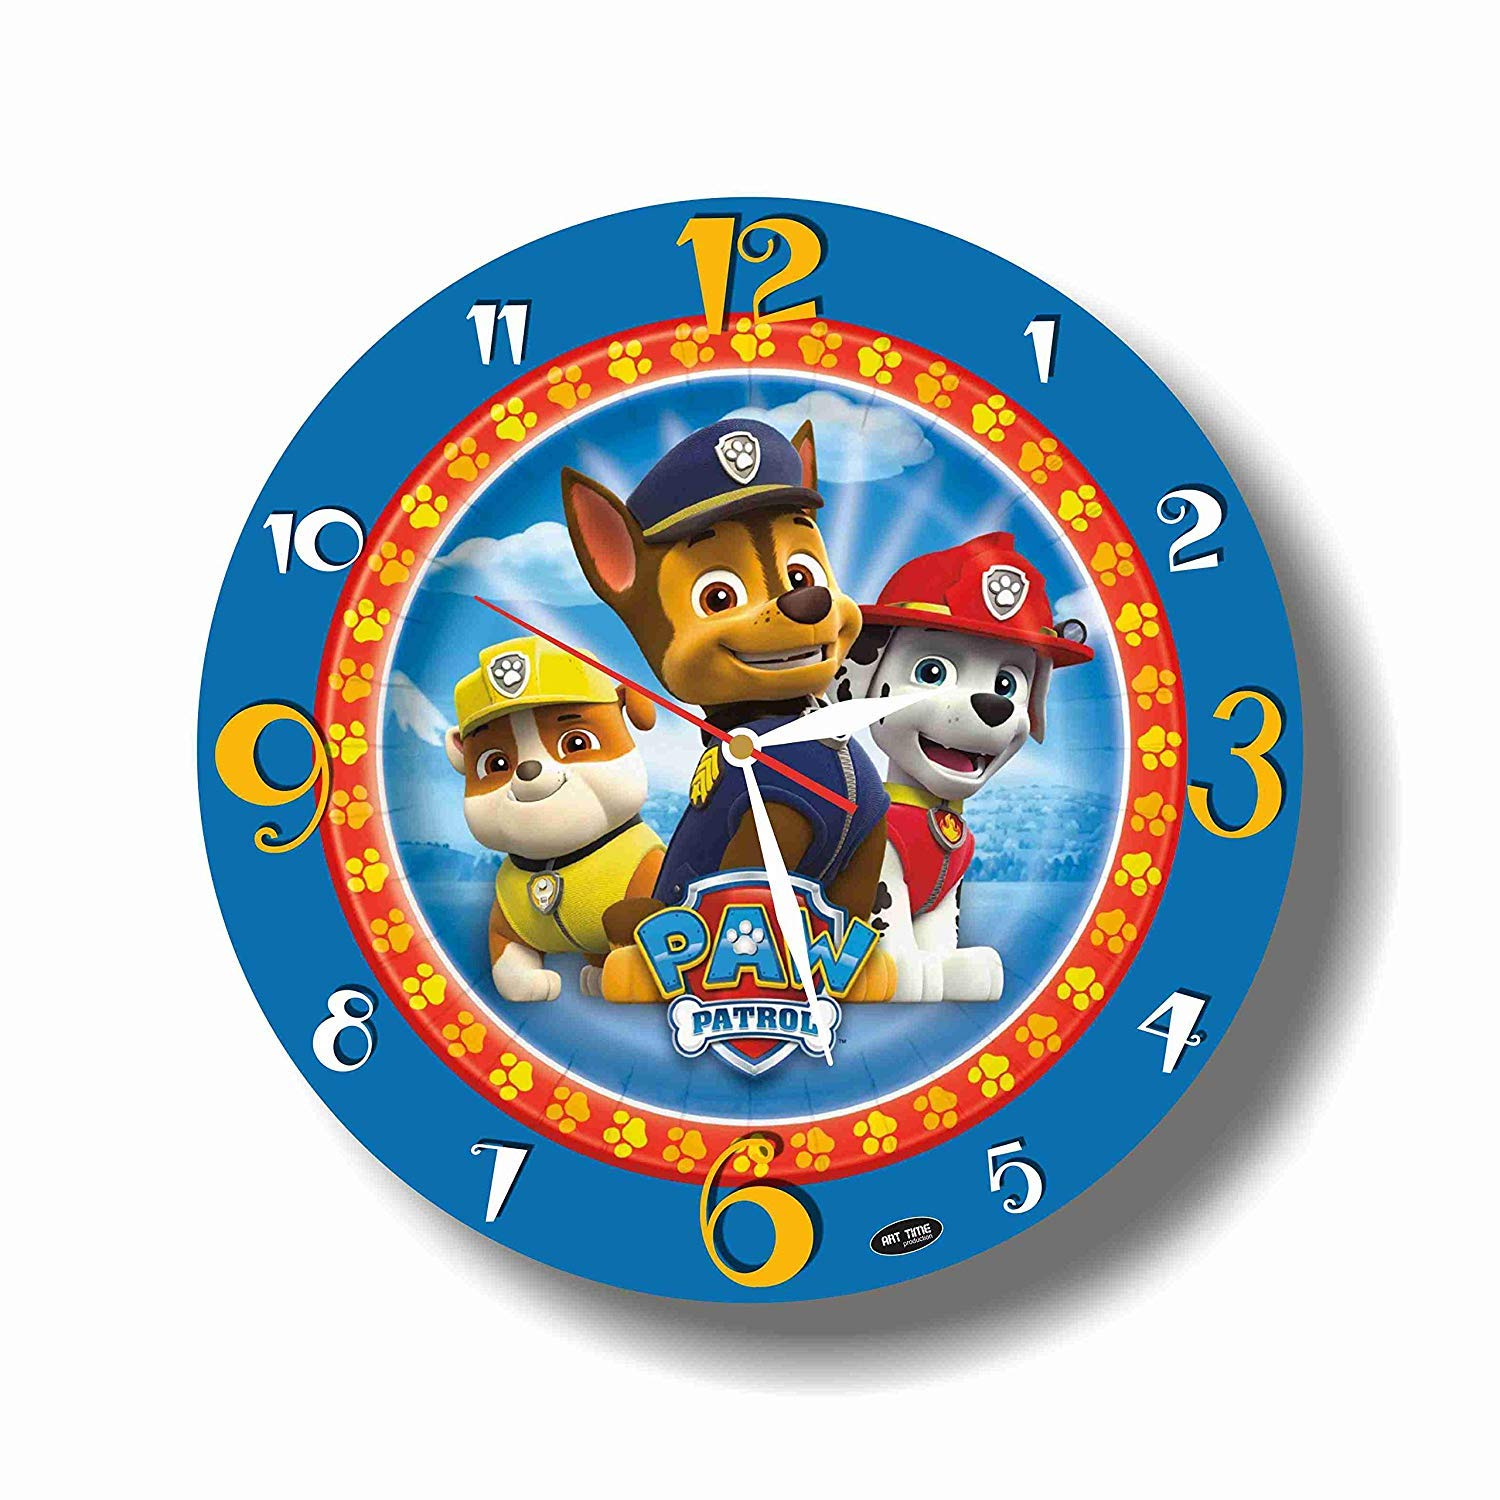 Amazon Com Art Time Production Fba Paw Patrol 11 8 Handmade Unique Wall Clock Get Unique Decor For Home Or Office Best Gift Ideas For Kids Friends Parents Kitchen Dining